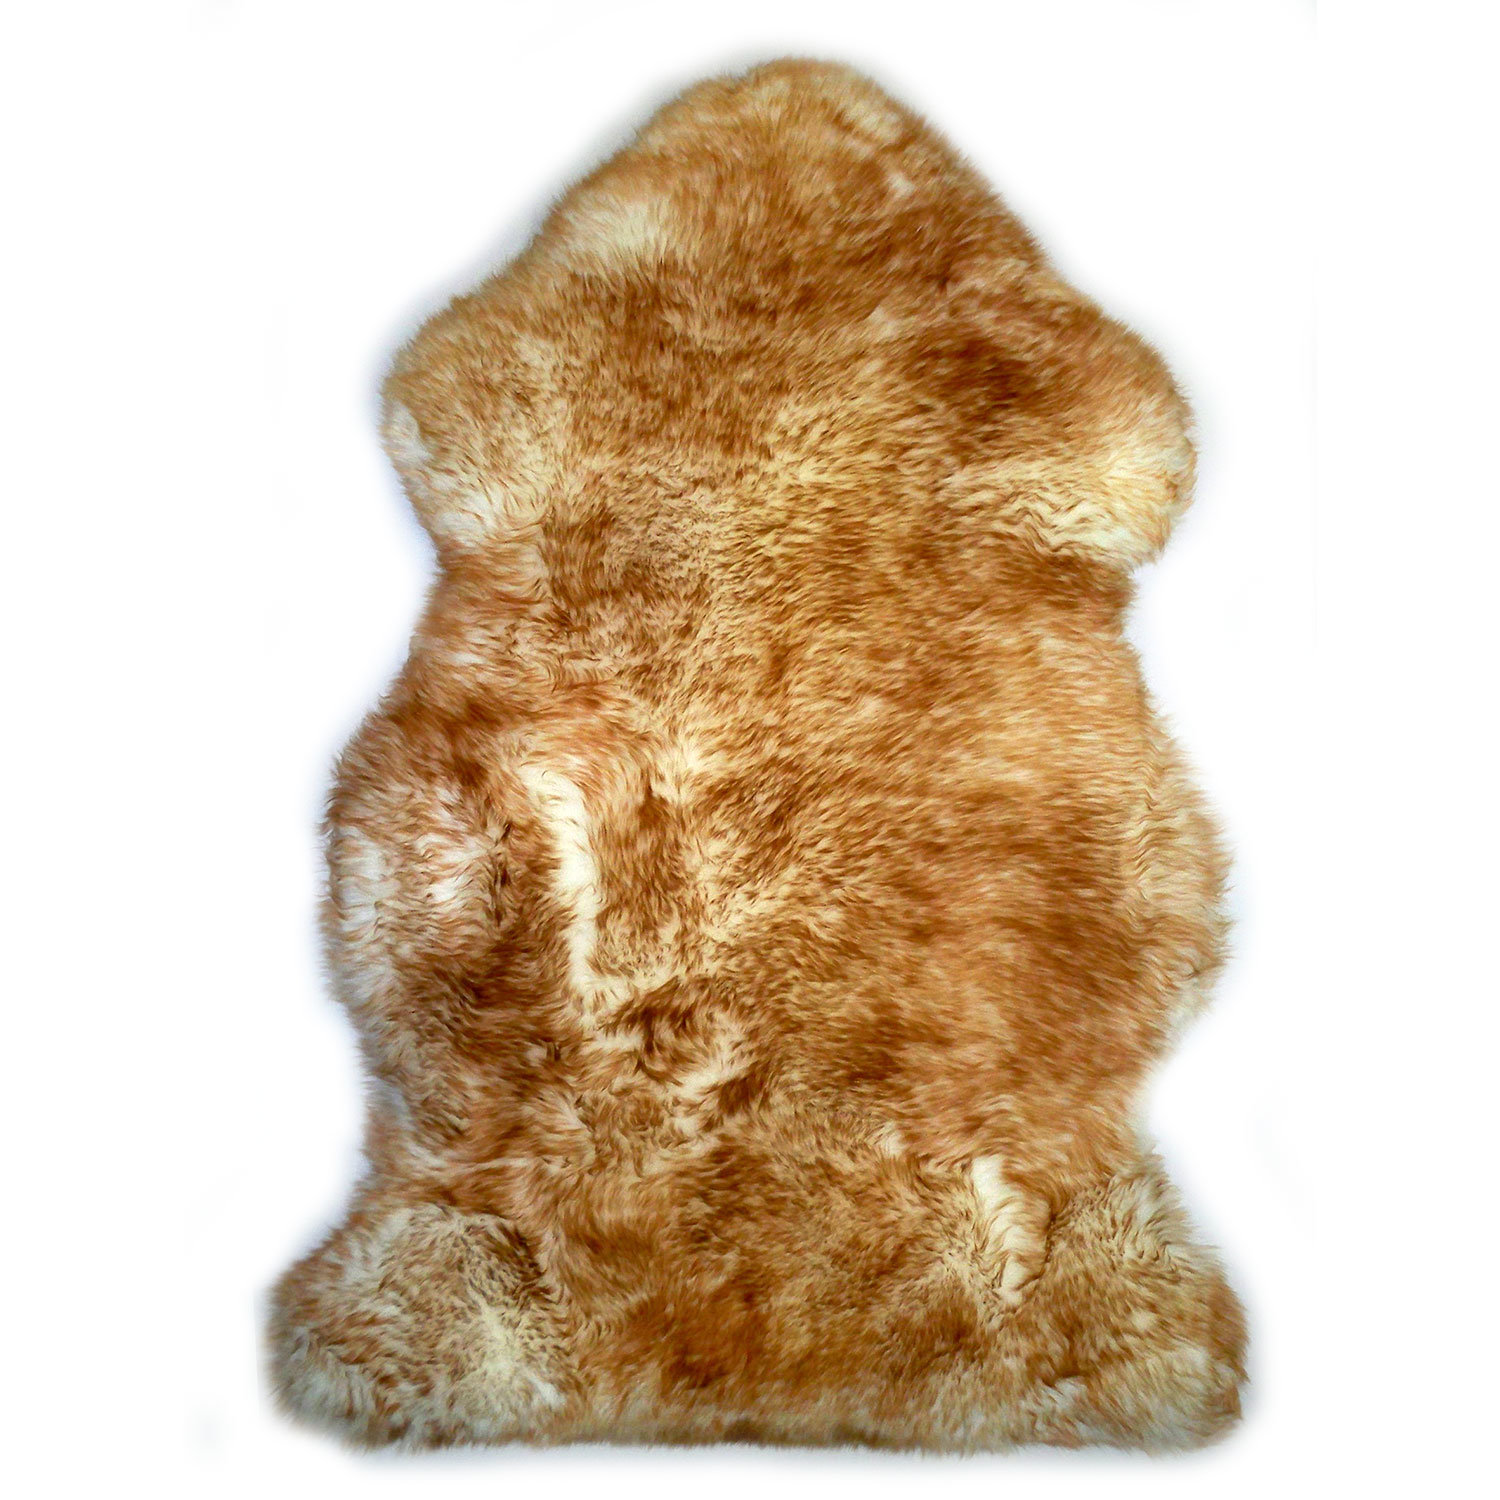 Sheepskin Rug Single Pelt White with Brown Tips